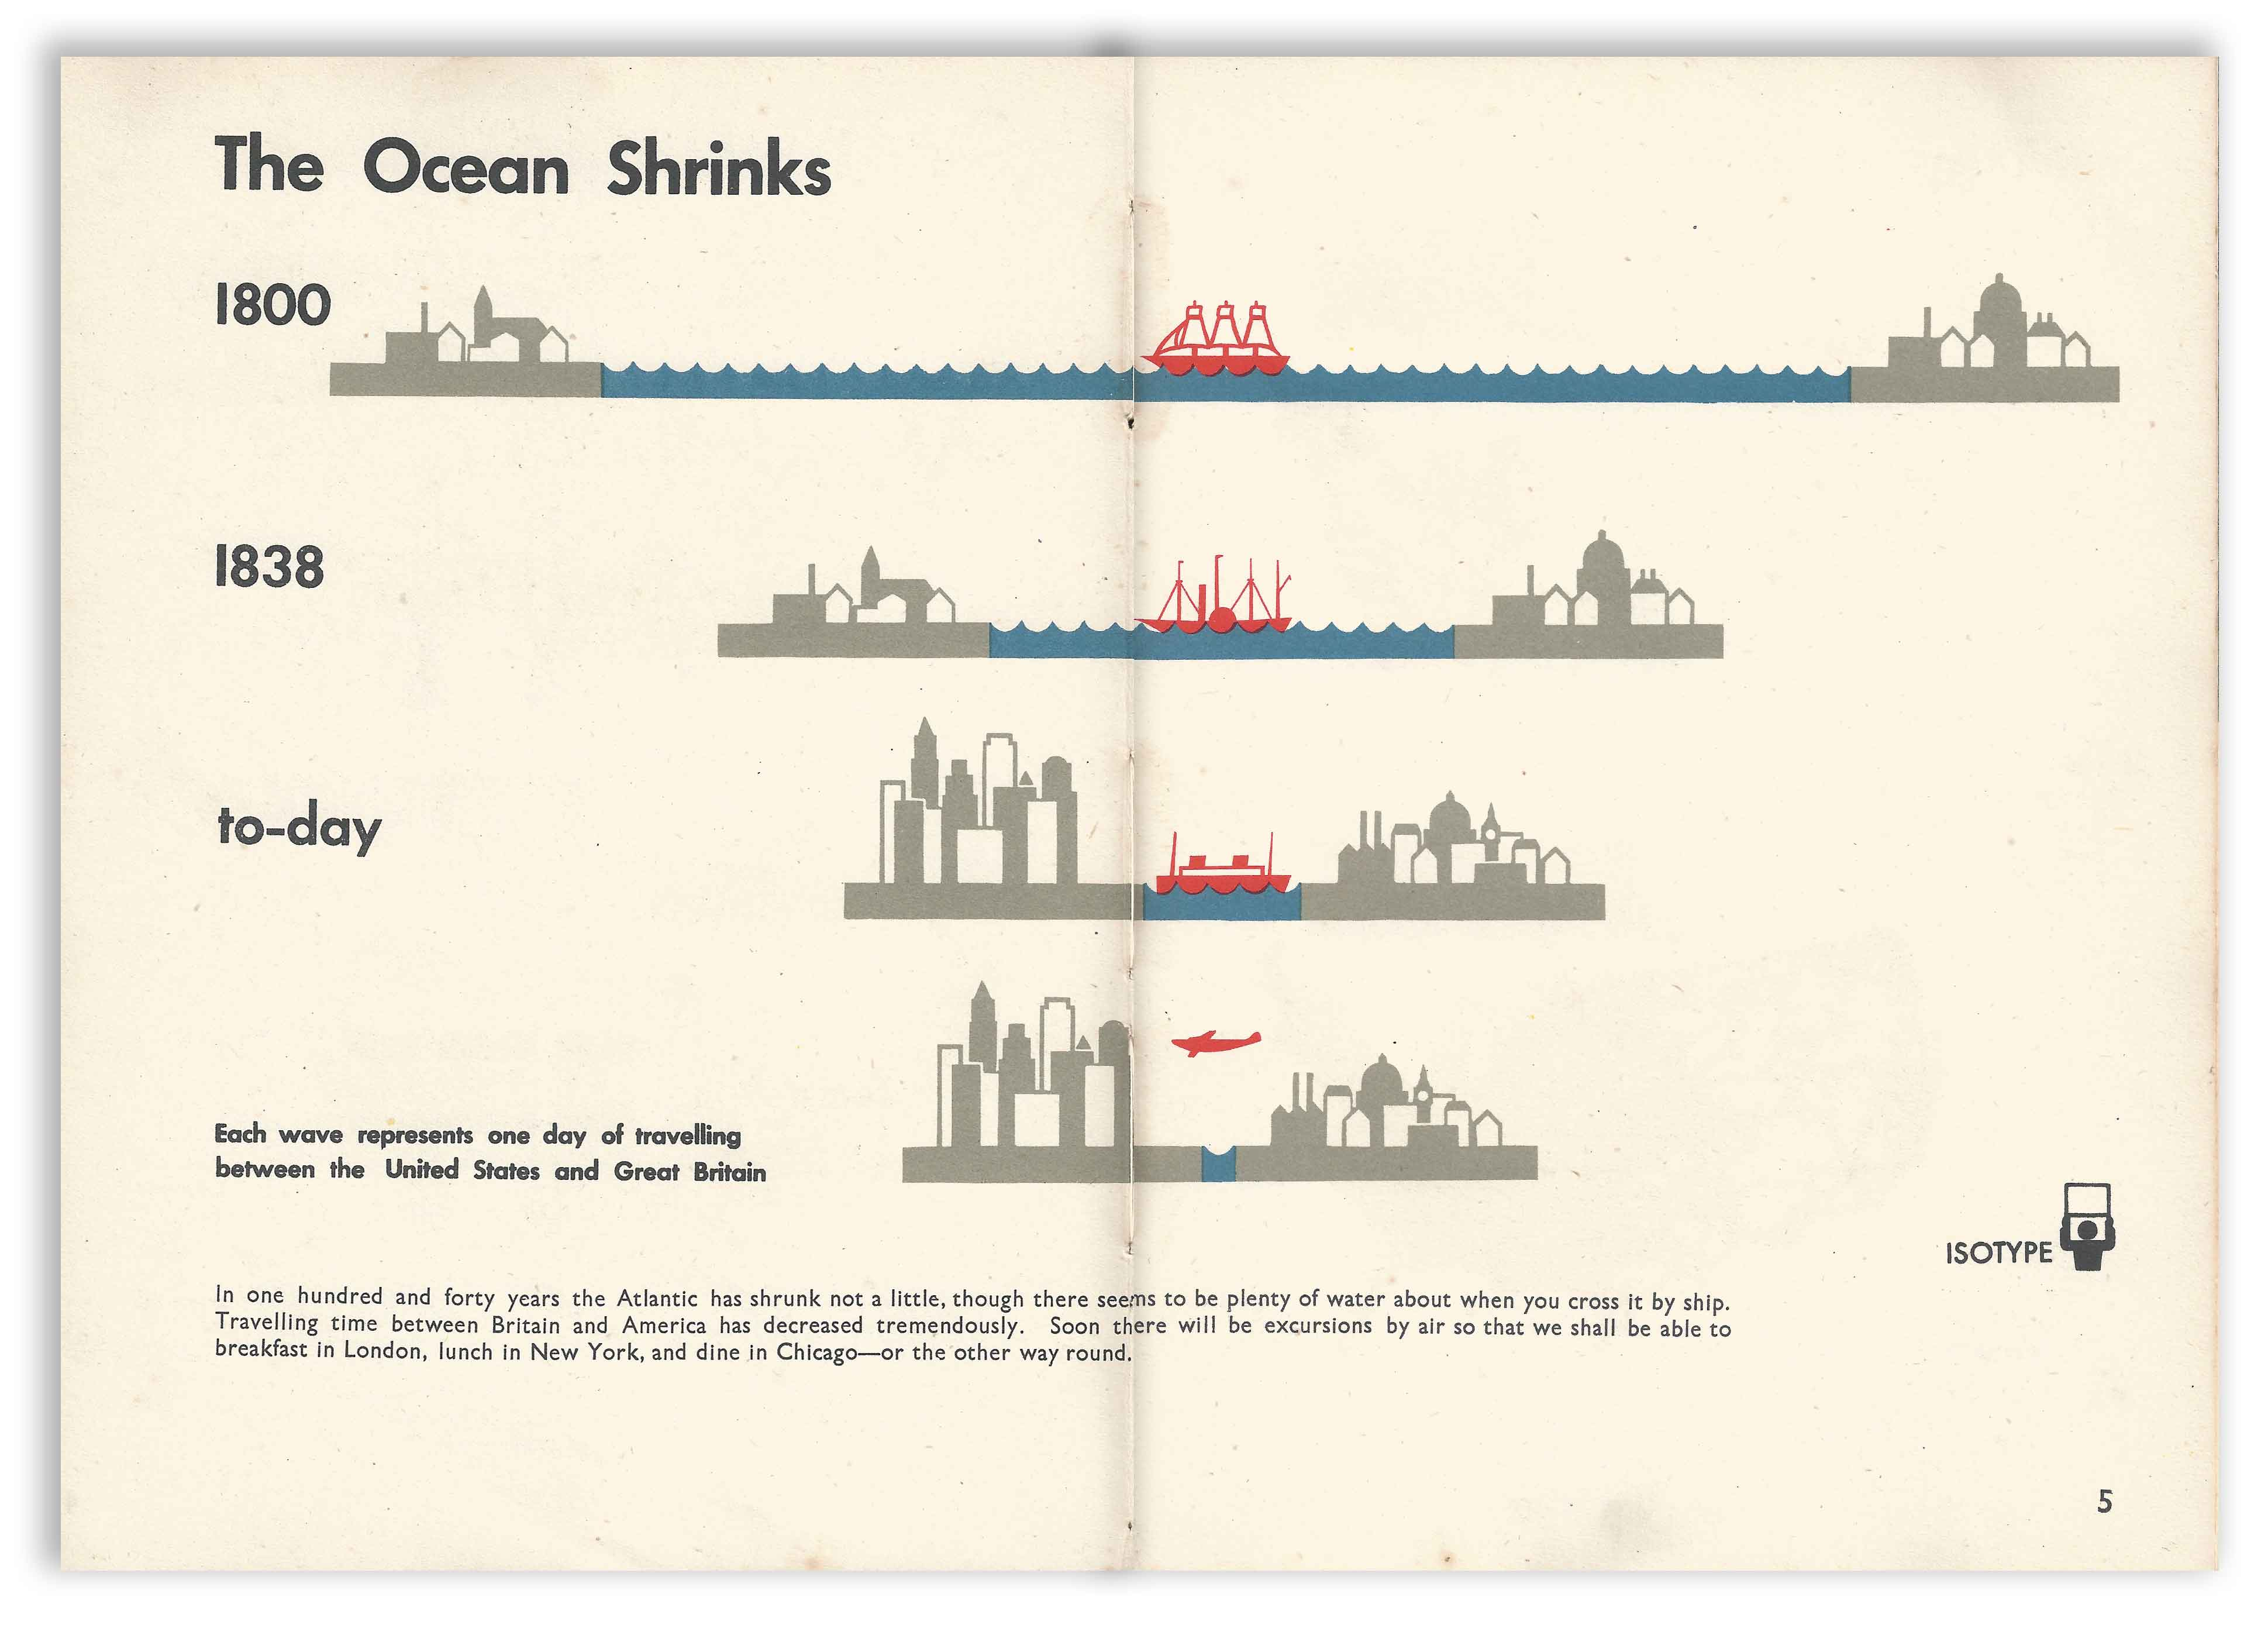 Isotype - Only An Ocean Between - The Ocean Shrinks